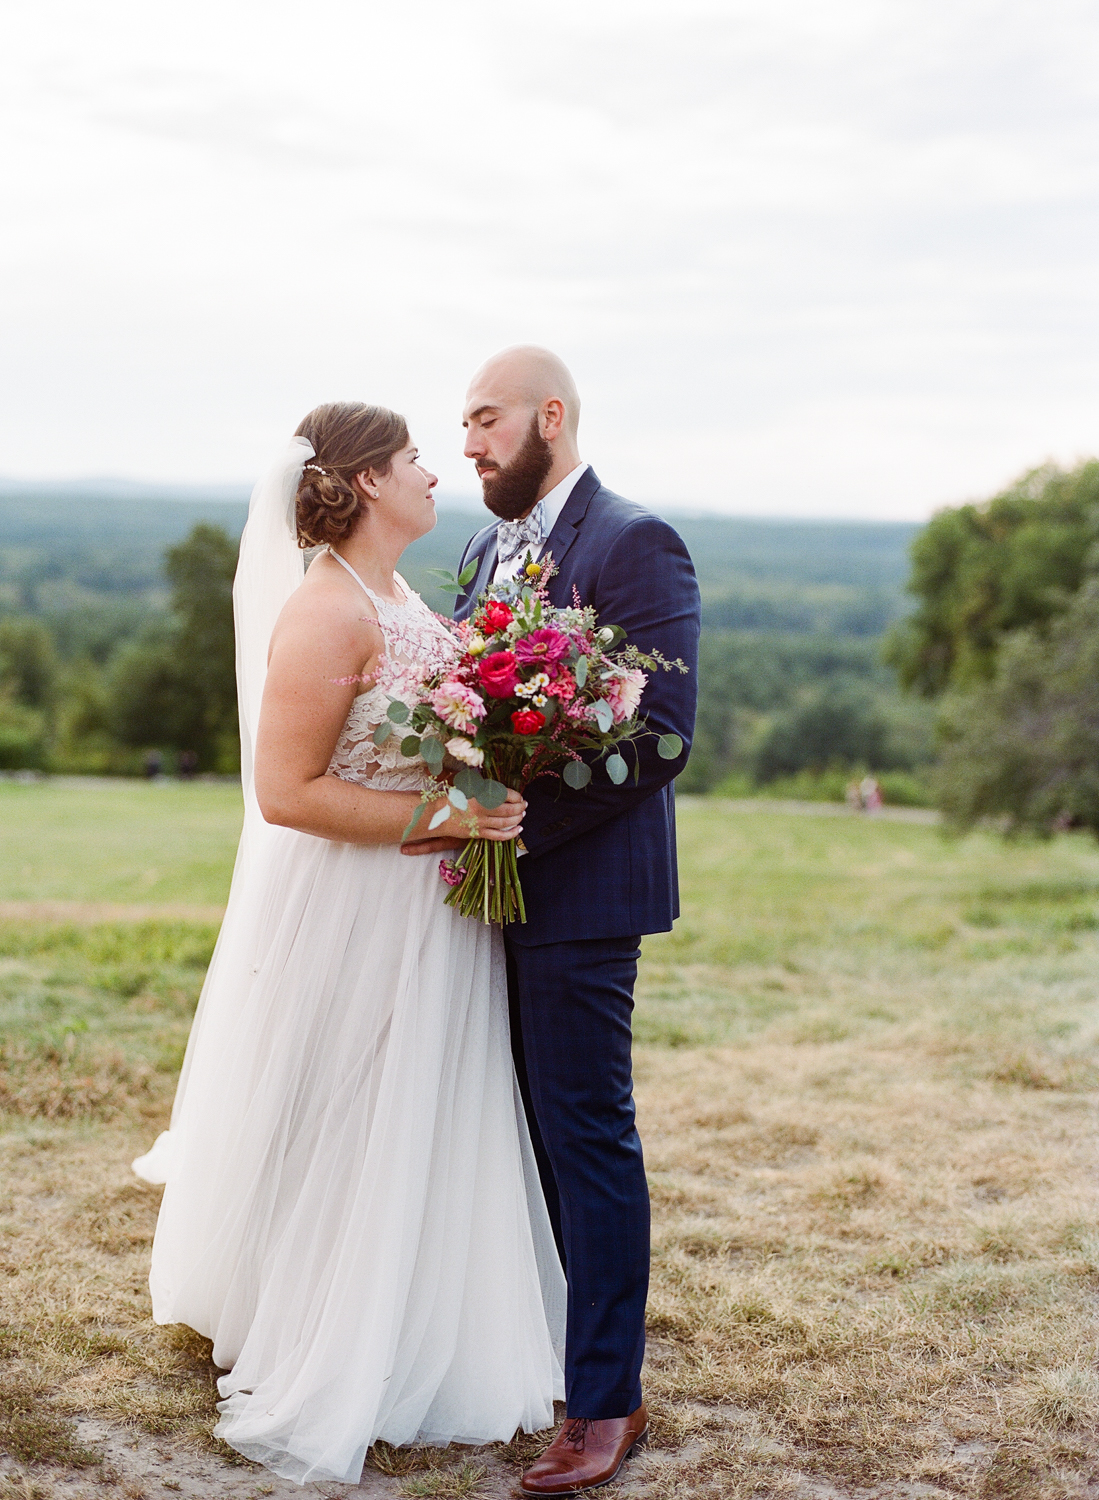 Maley_Dave_Fruitlands_Museum_Wedding-75.jpg